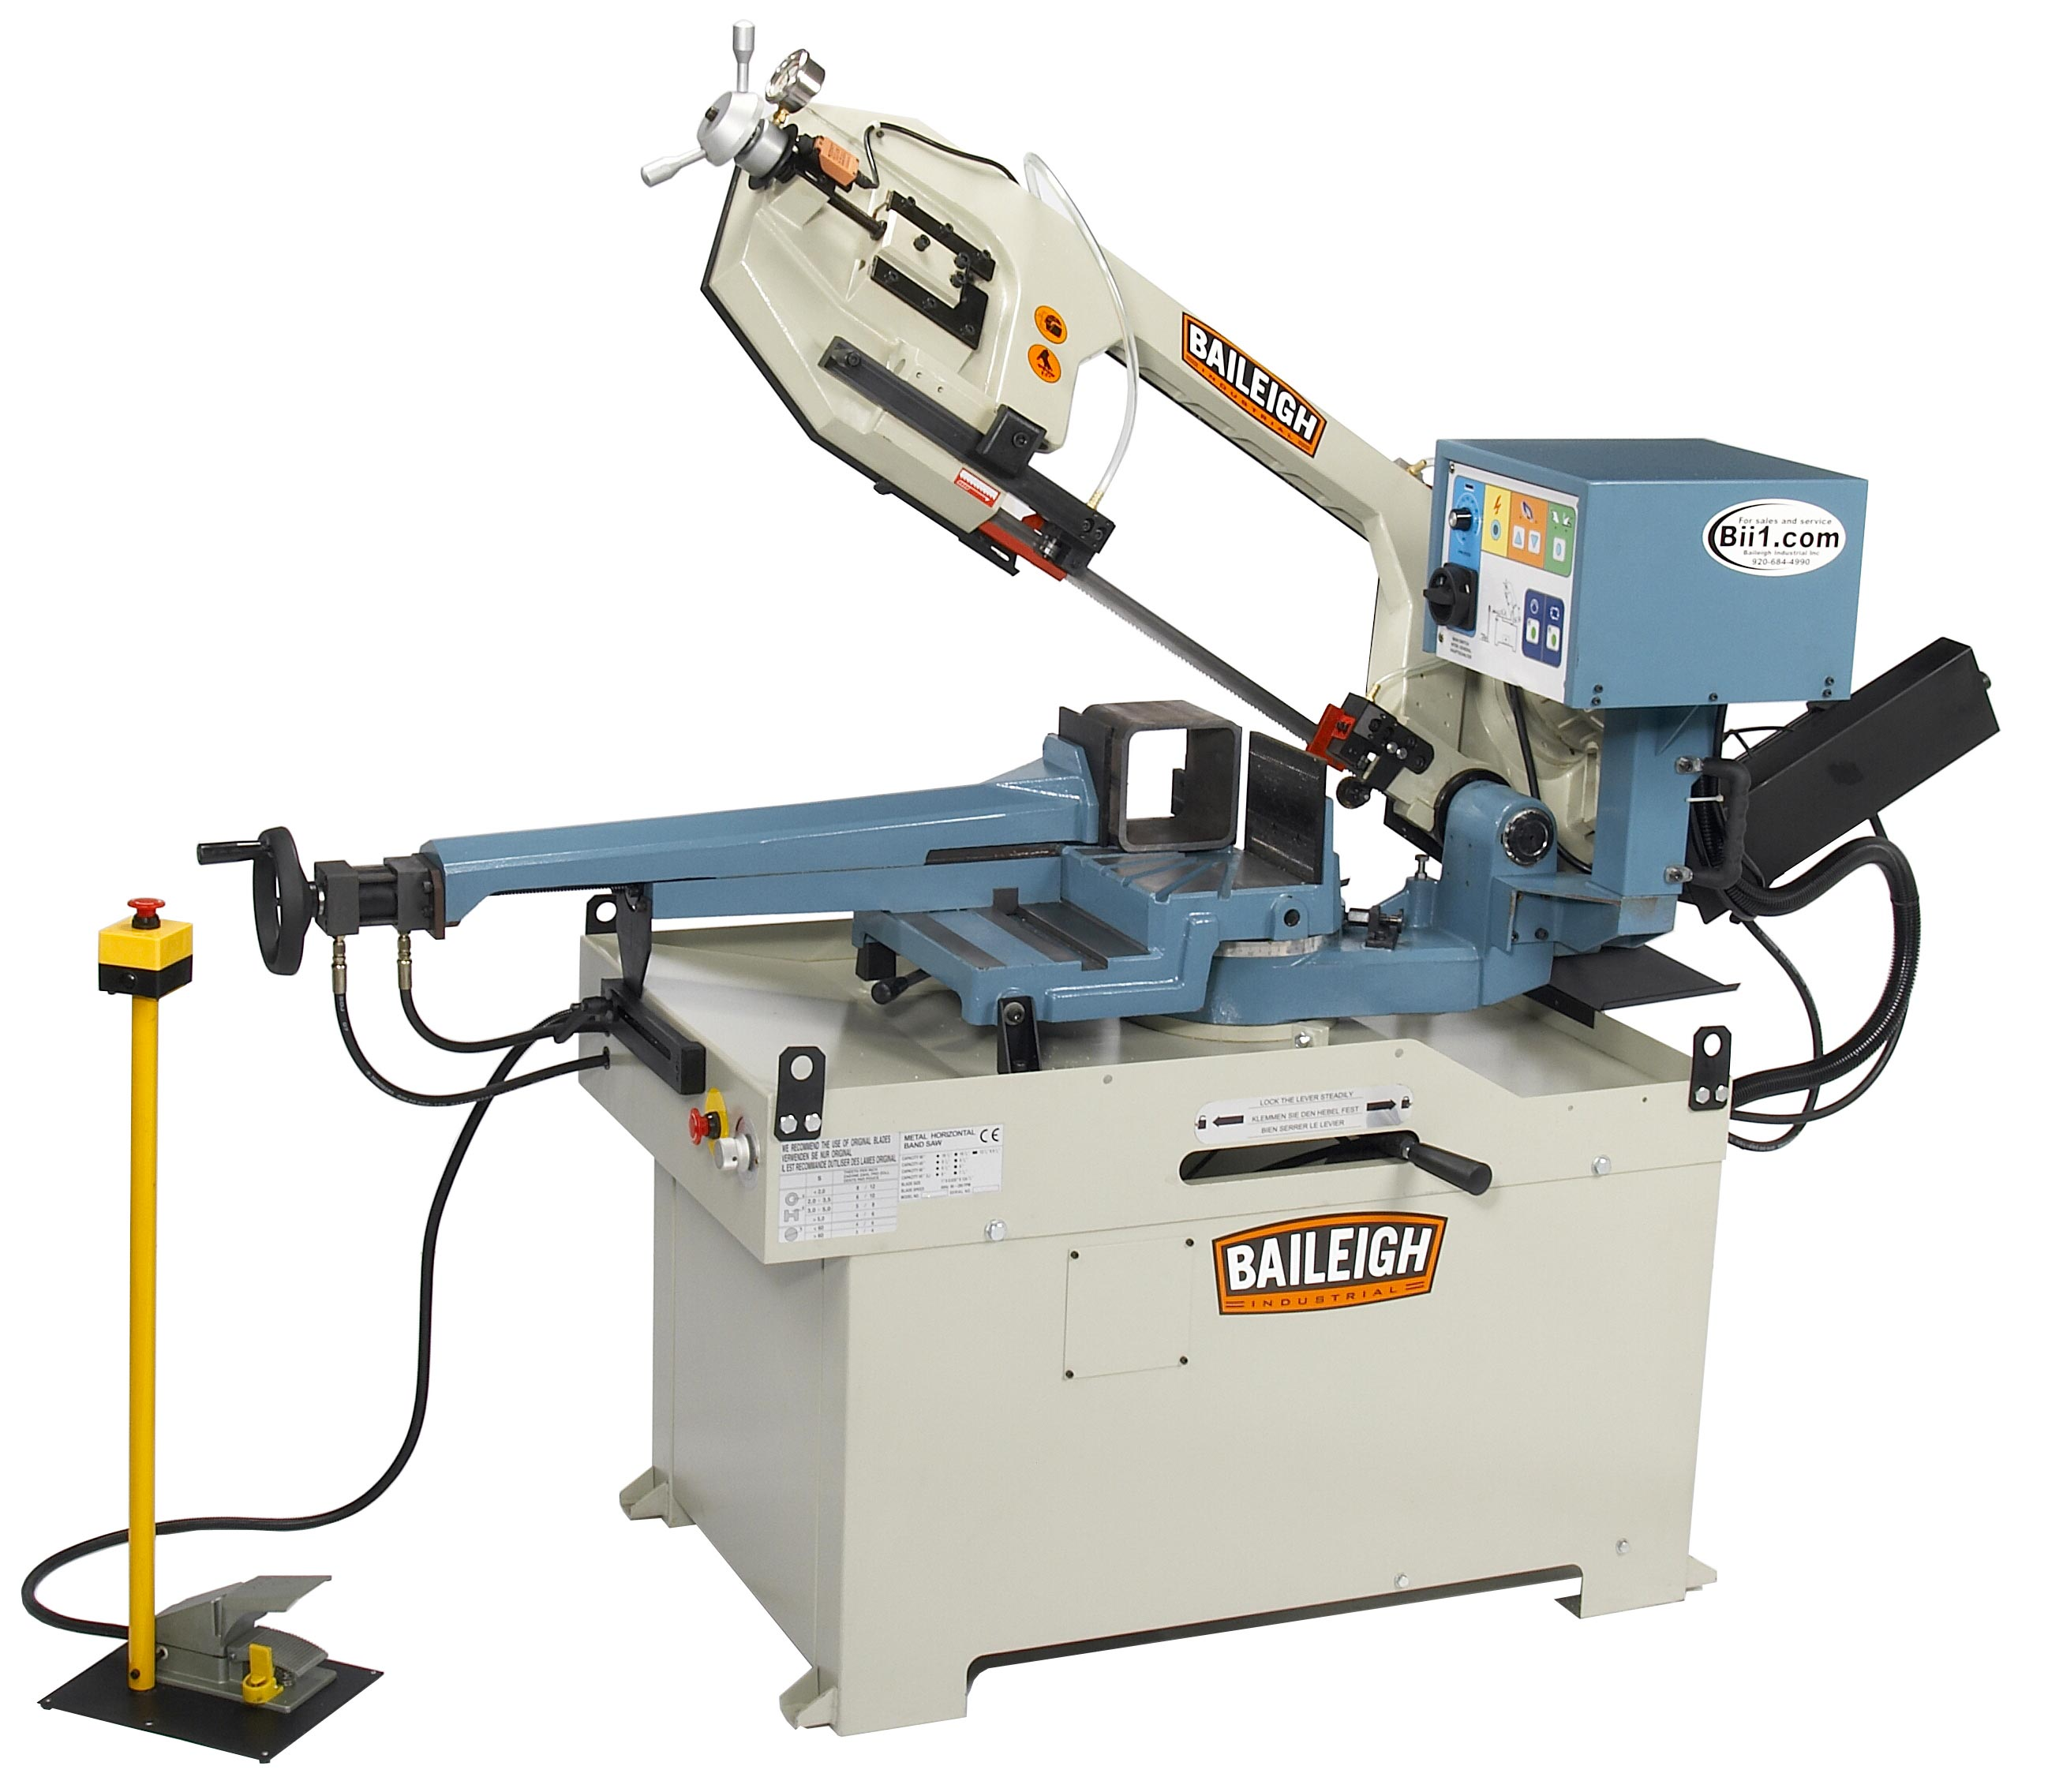 Baileigh Gear Driven Dual Miter Band Saw Bs 350sa